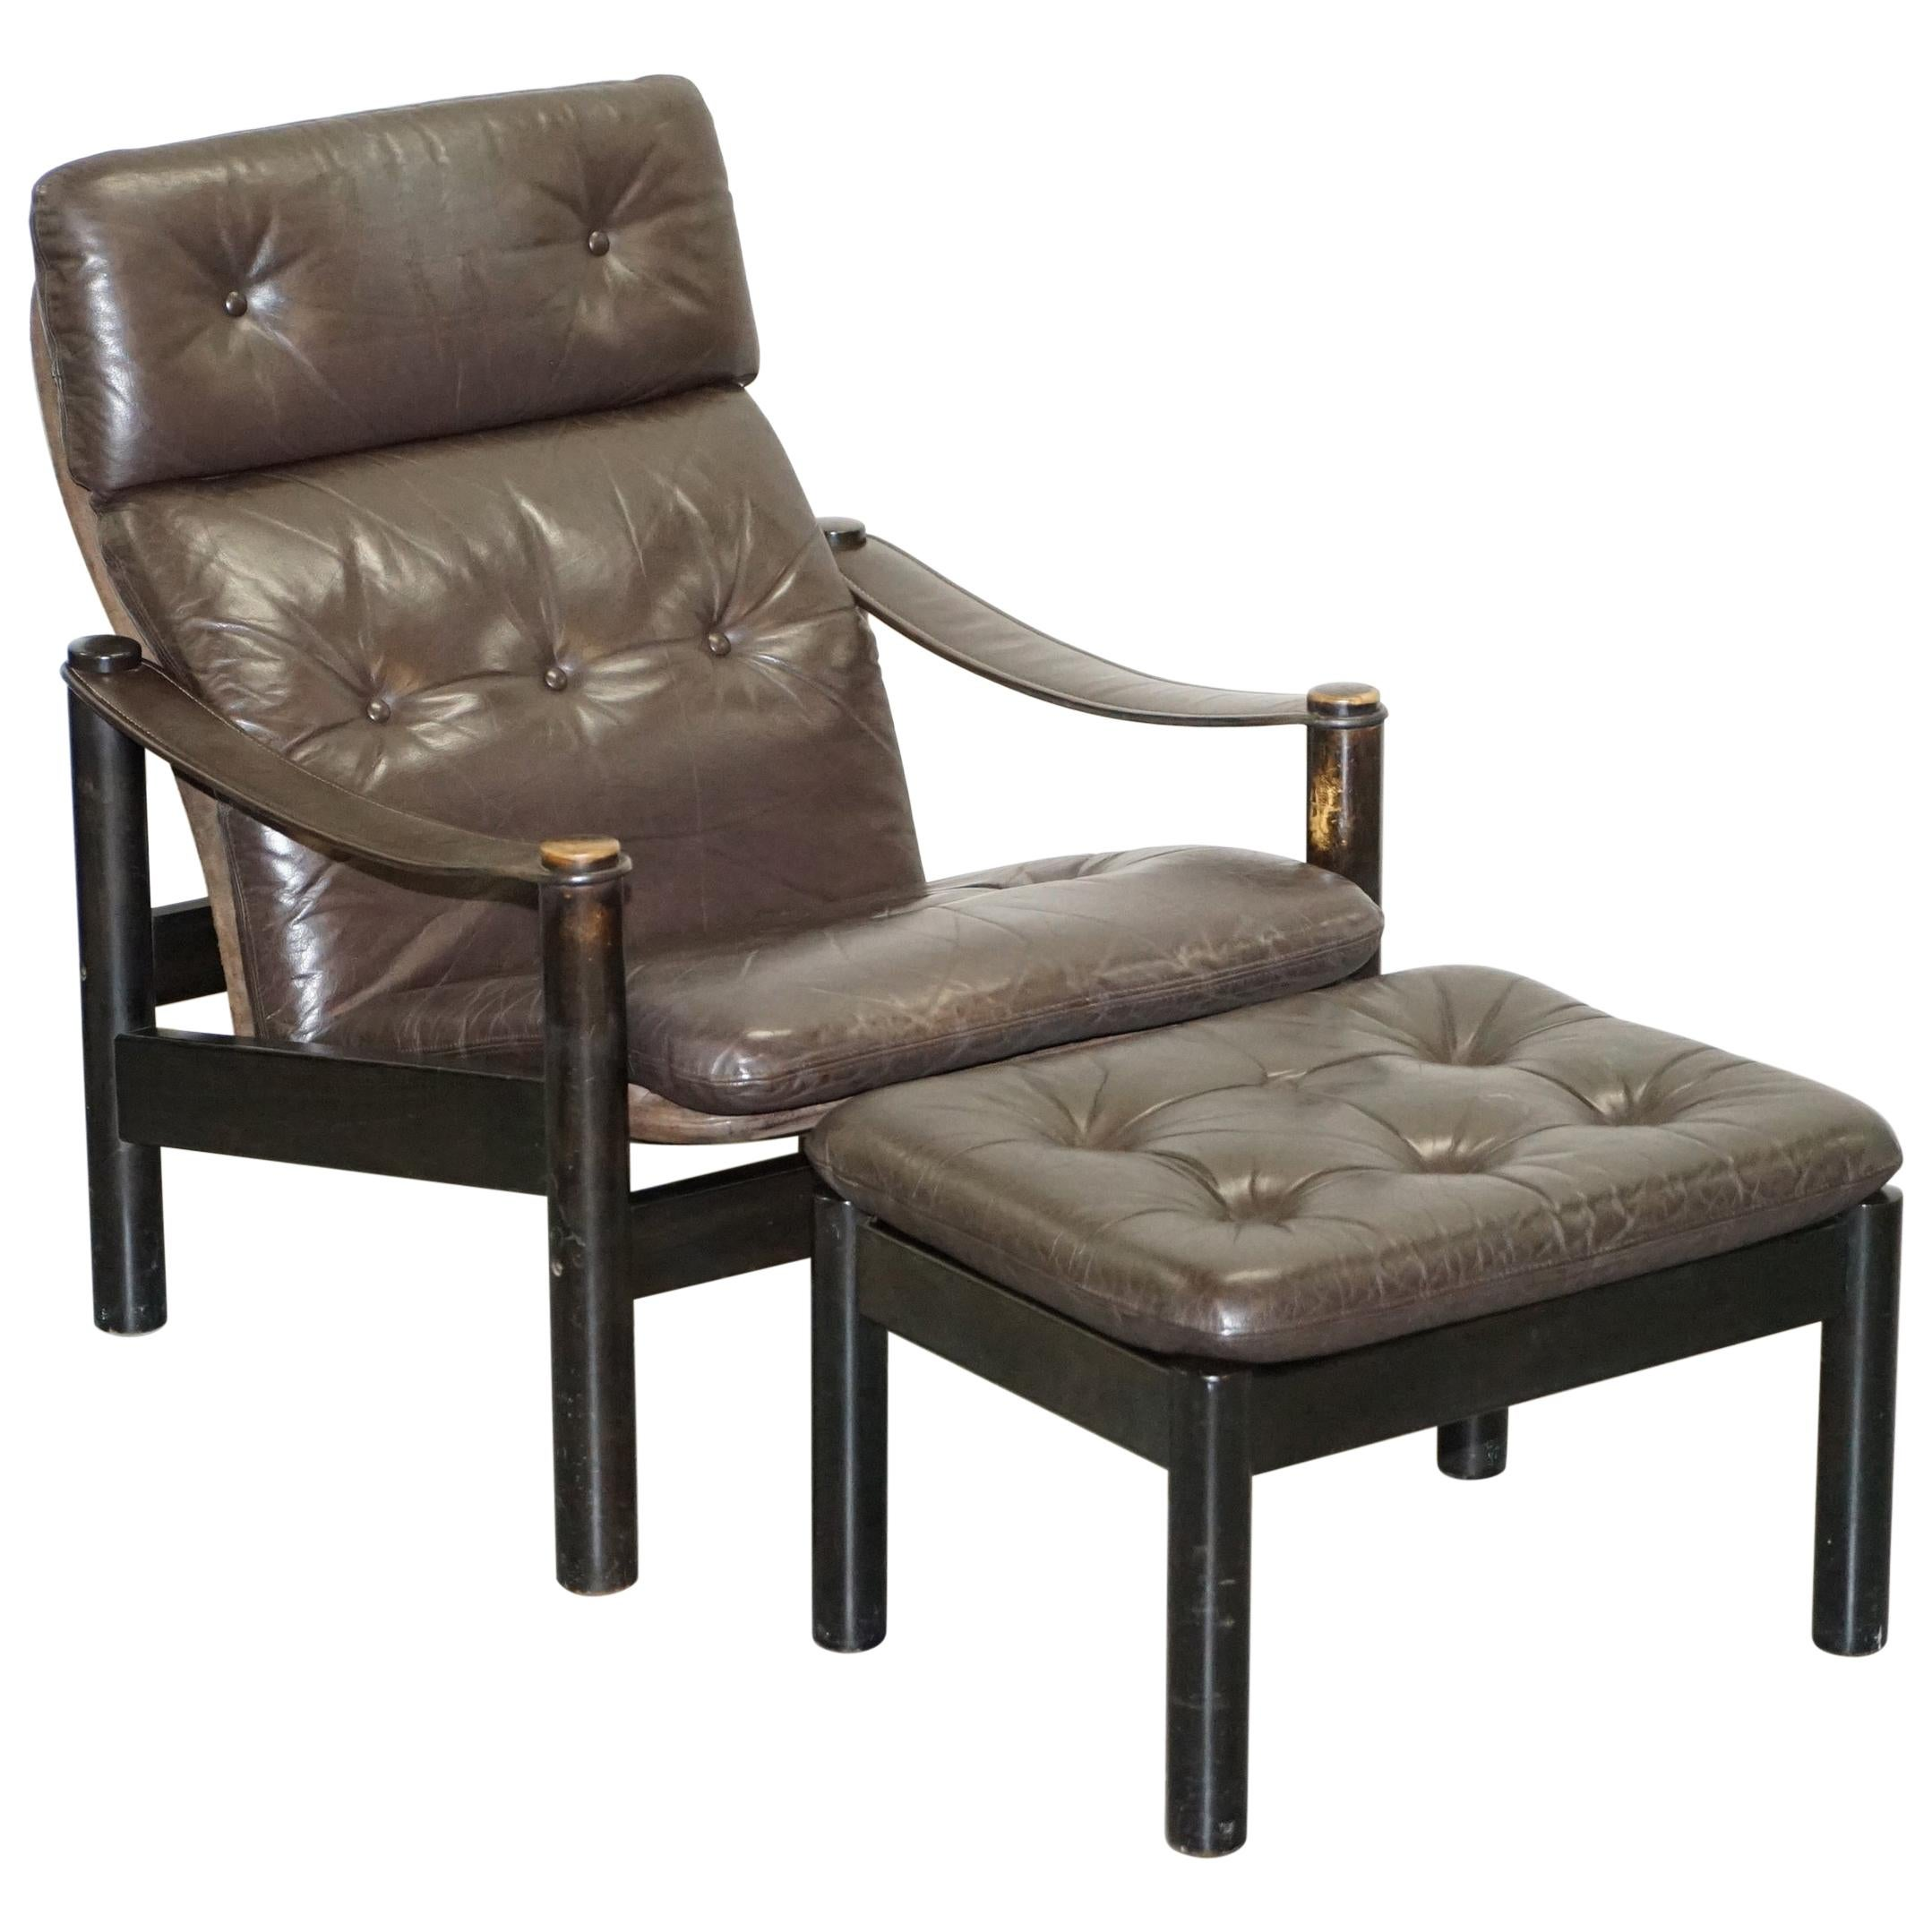 Lovely Danish Brown Leather Mid-Century Modern Armchair & Chesterfield Footstool